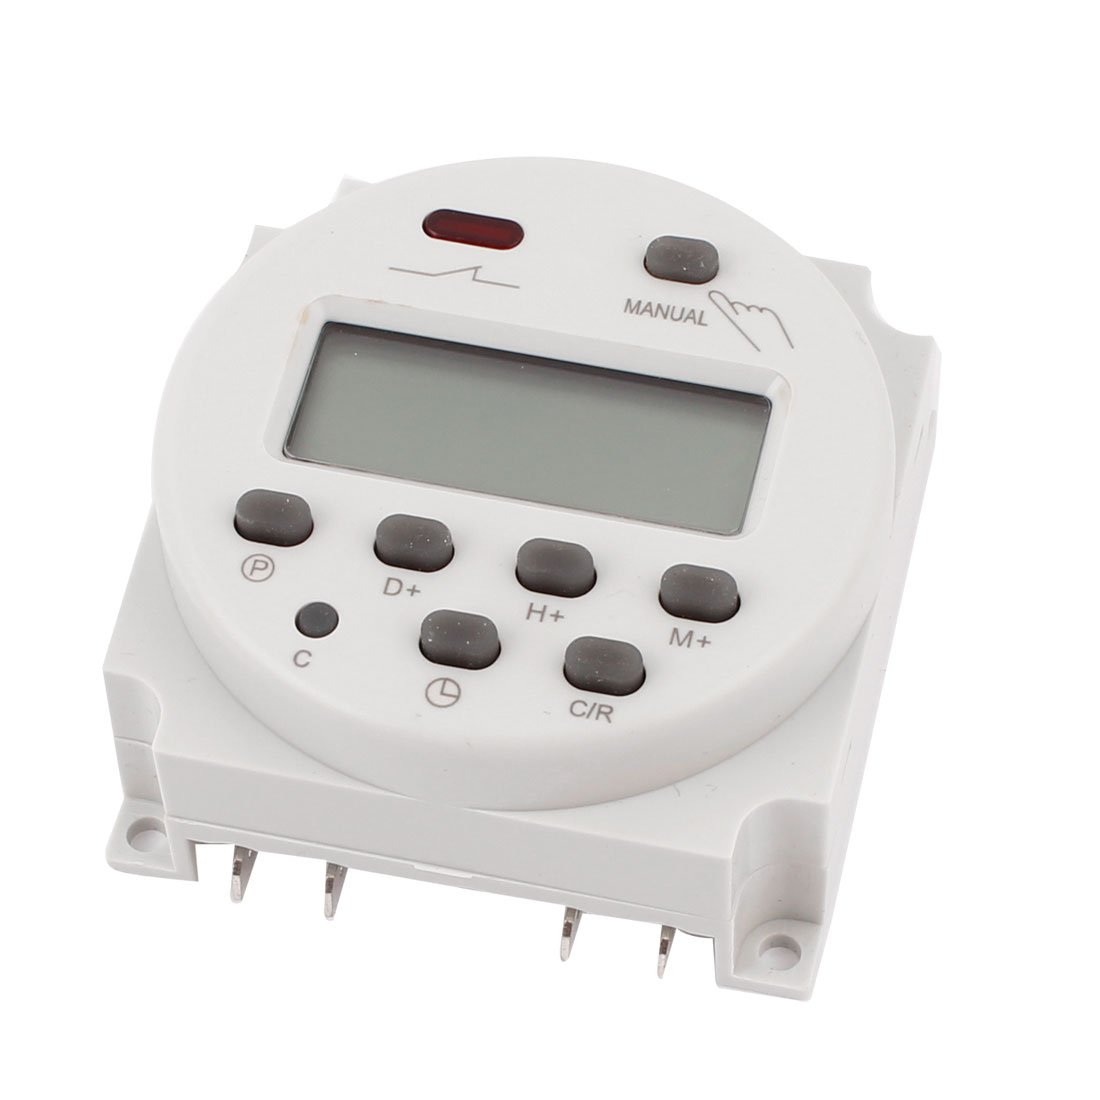 LCD Digital Programmable Power Timer Switch Time Relay 16A AC/DC 110V electrical appliance programmable digital timer with lcd display ac 220v